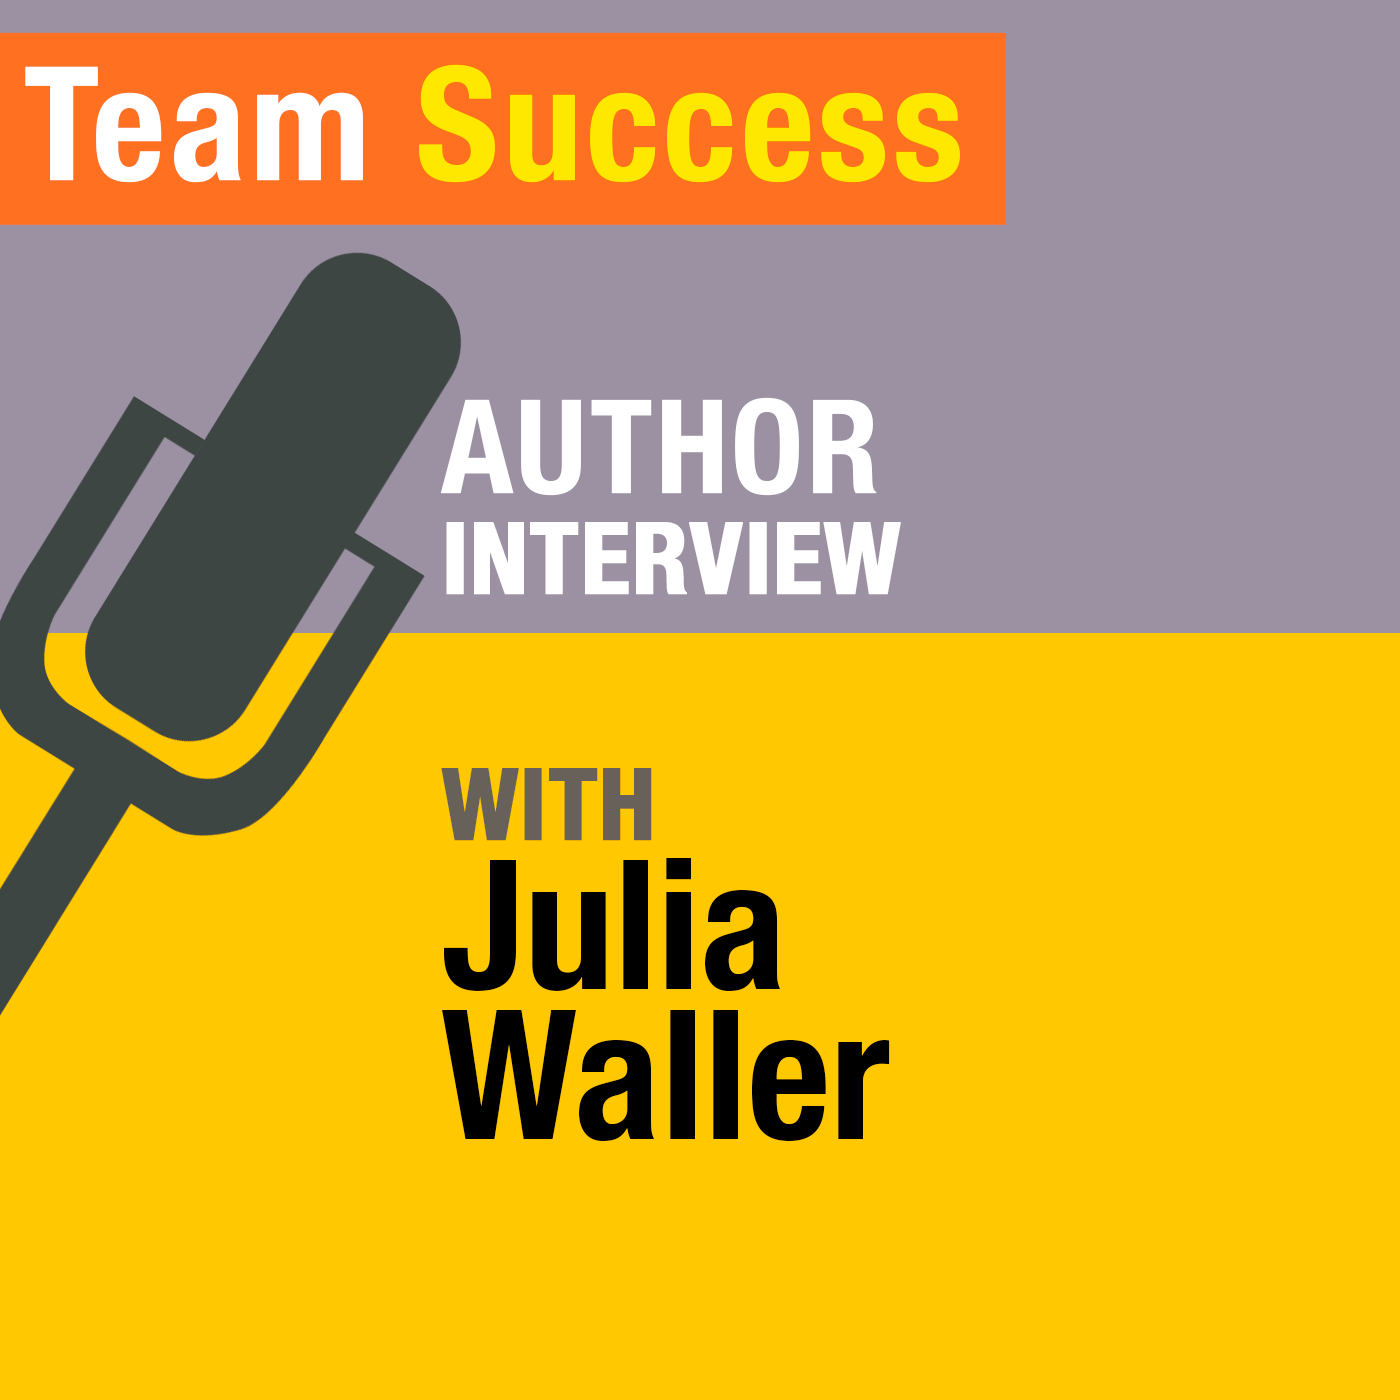 Author Interview With Julia Waller - Team Success Podcast